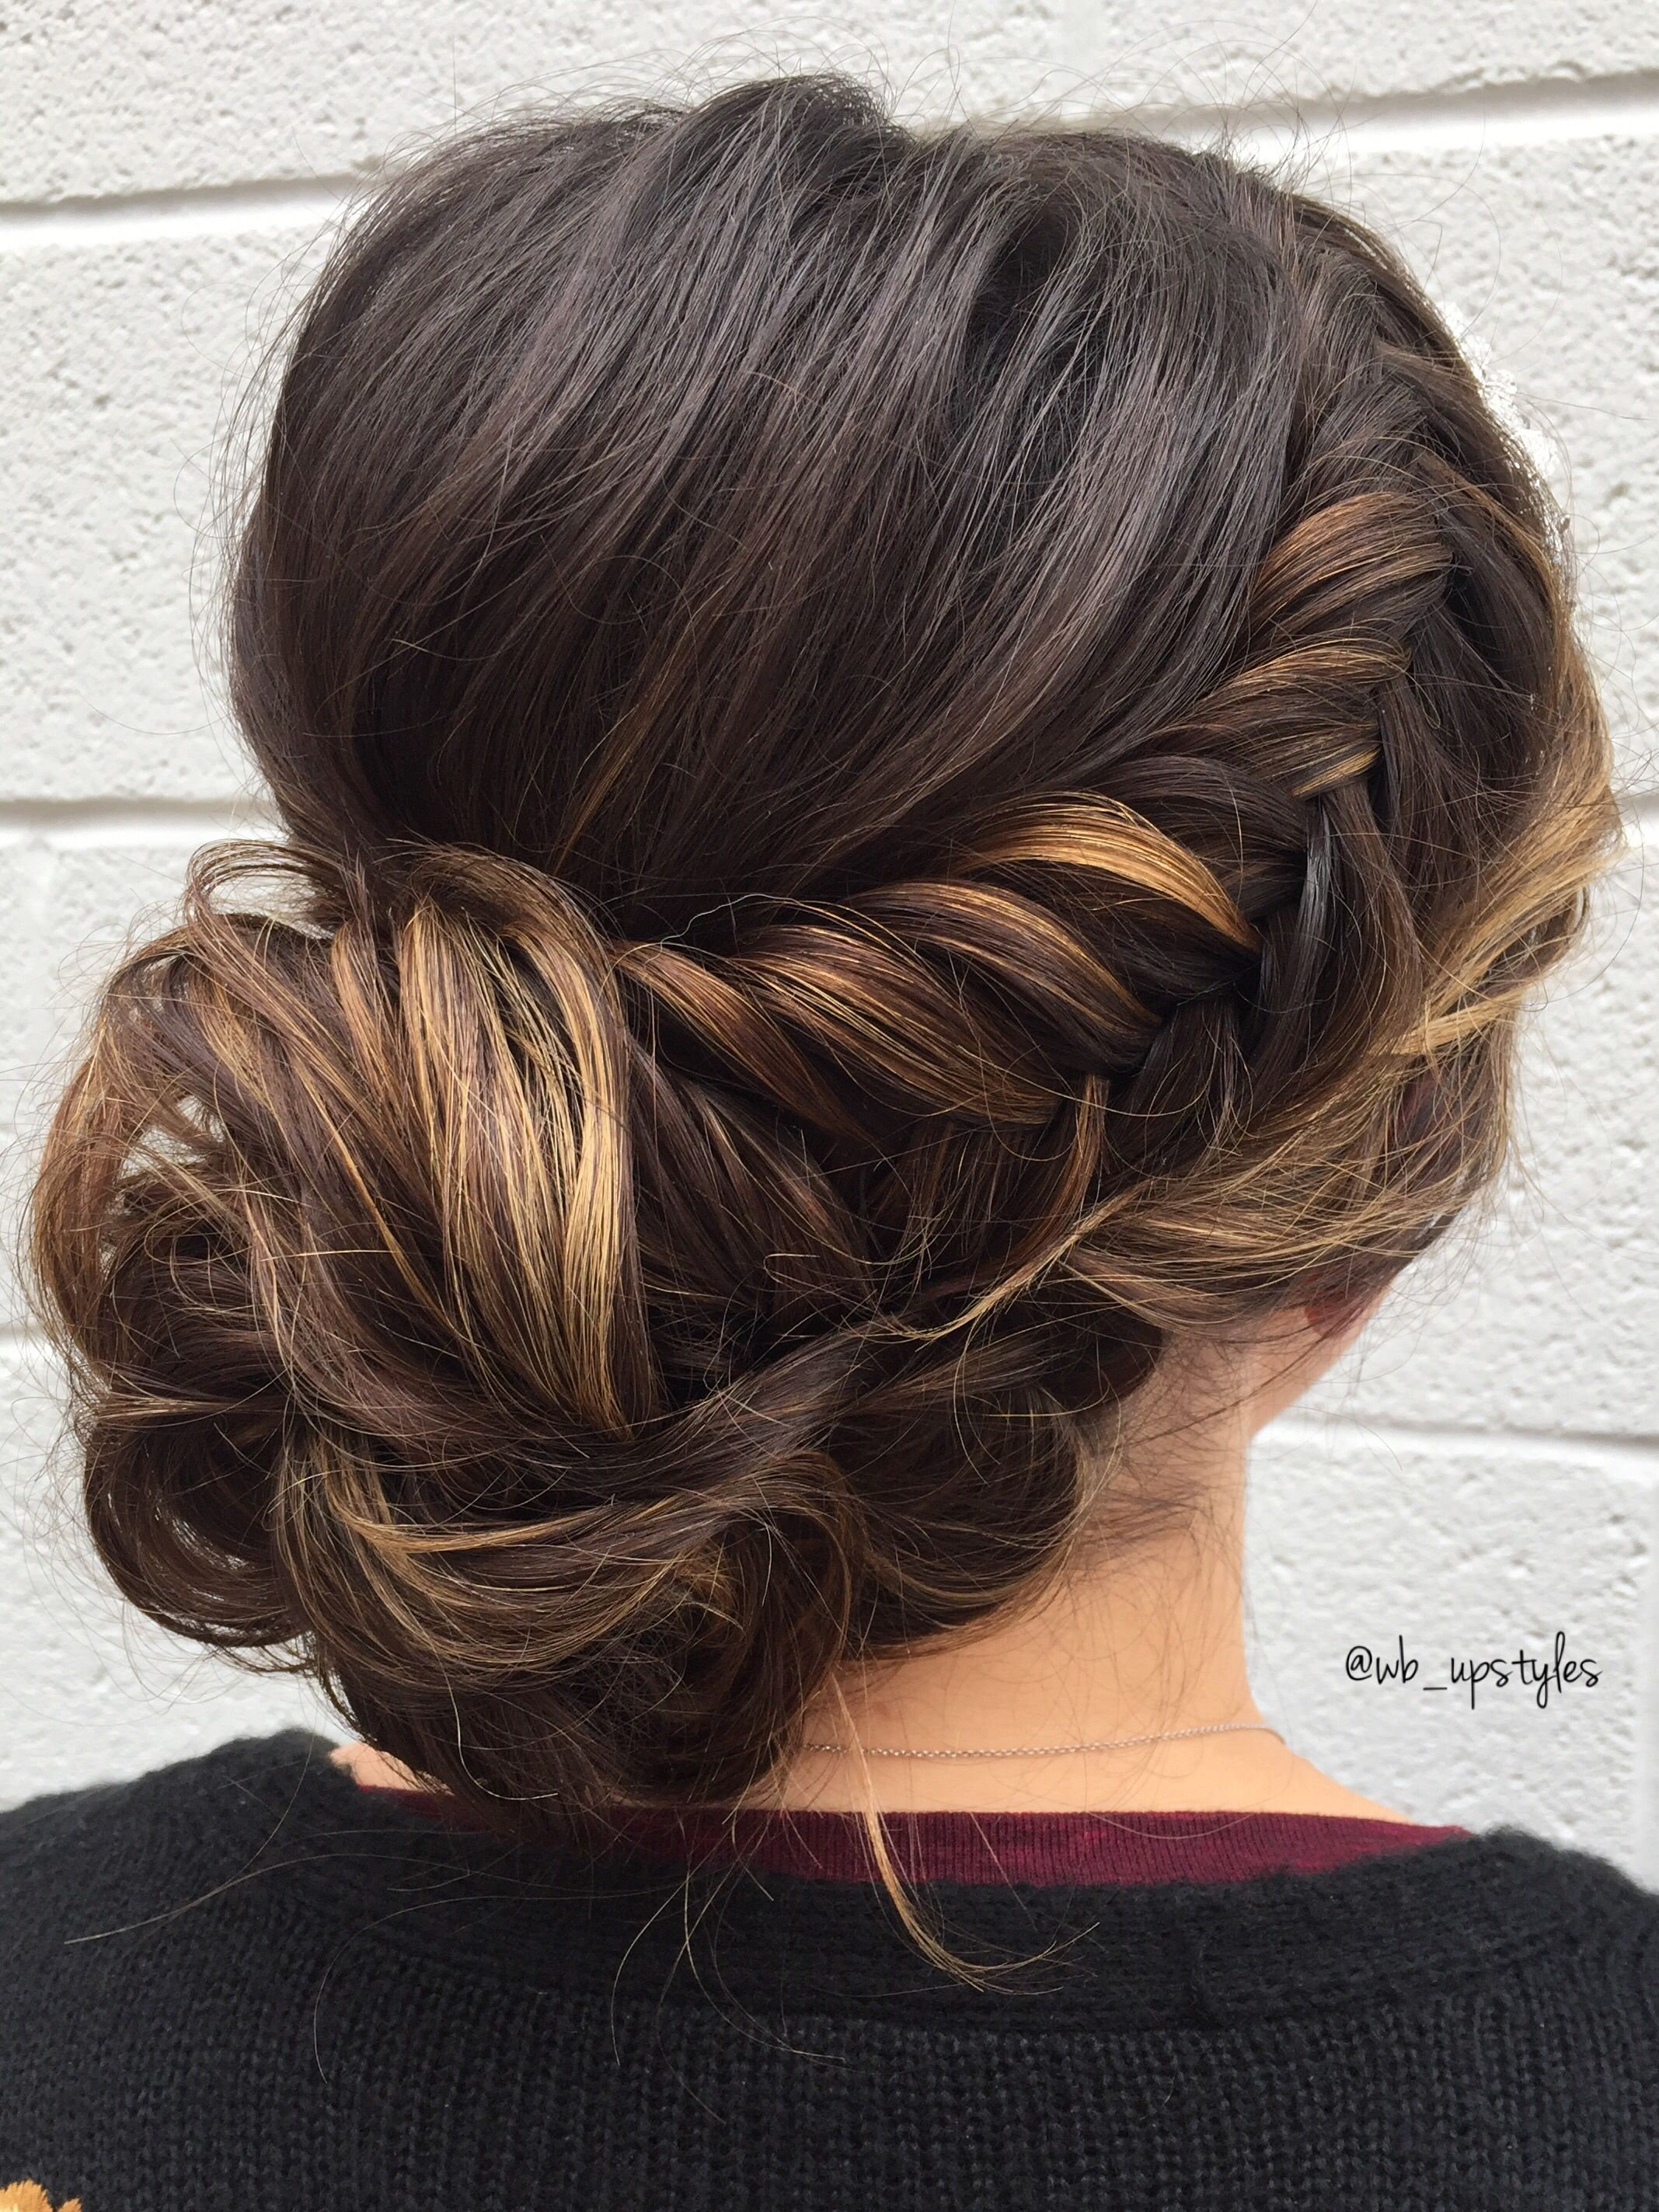 braided updo, fishtail french braid | wedding hairstyles in